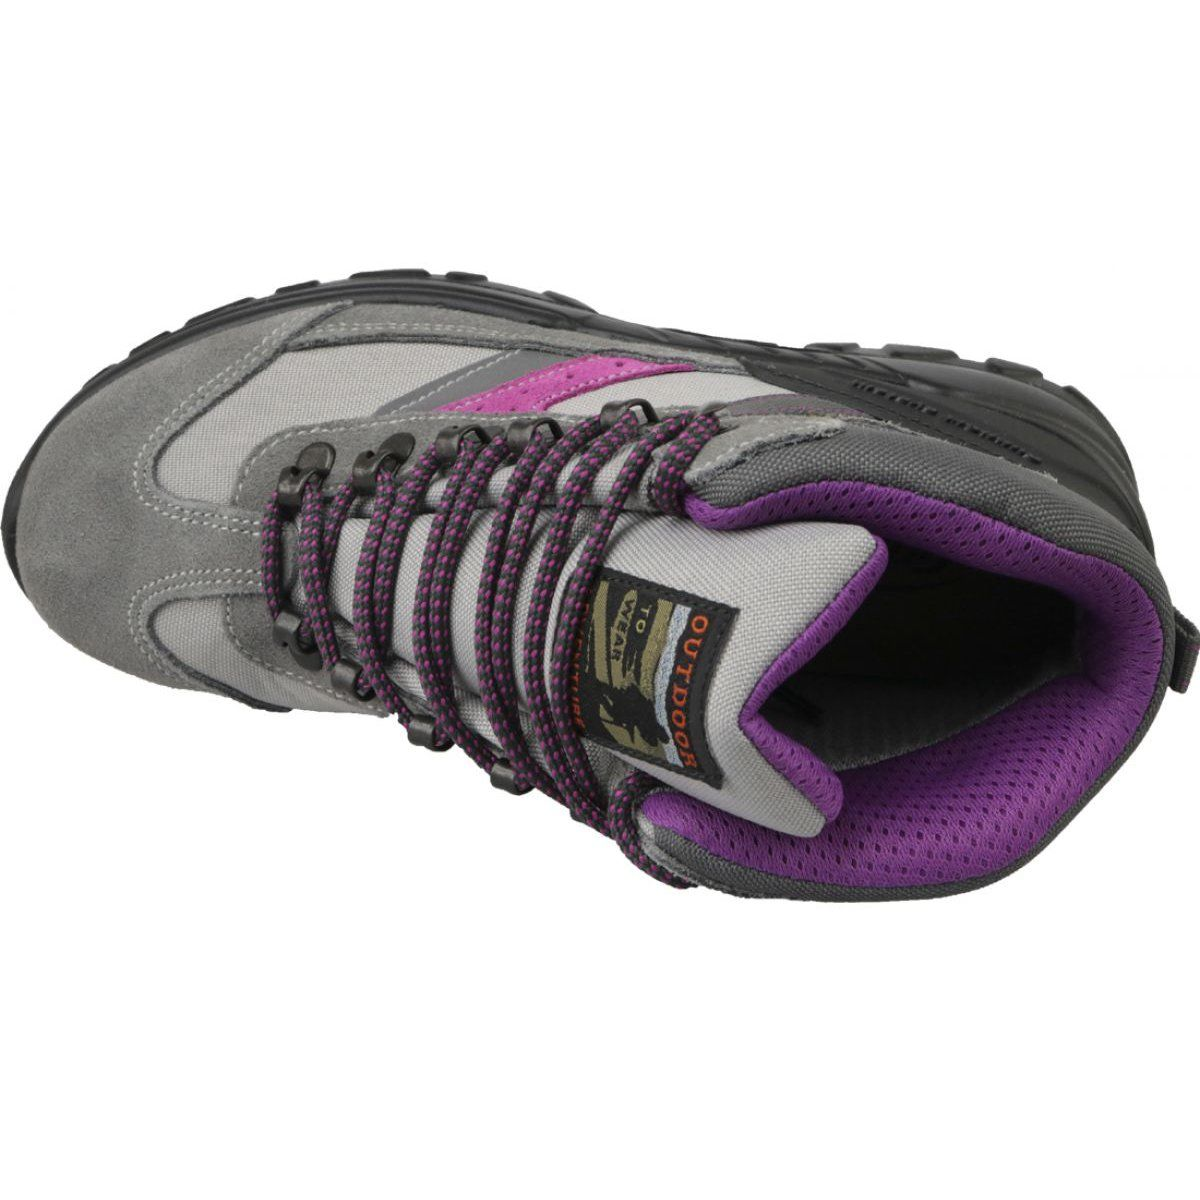 Grisport Grigio W 13316s7g Shoes Grey Hiking Boots Women Sport Shoes Women Hiking Women